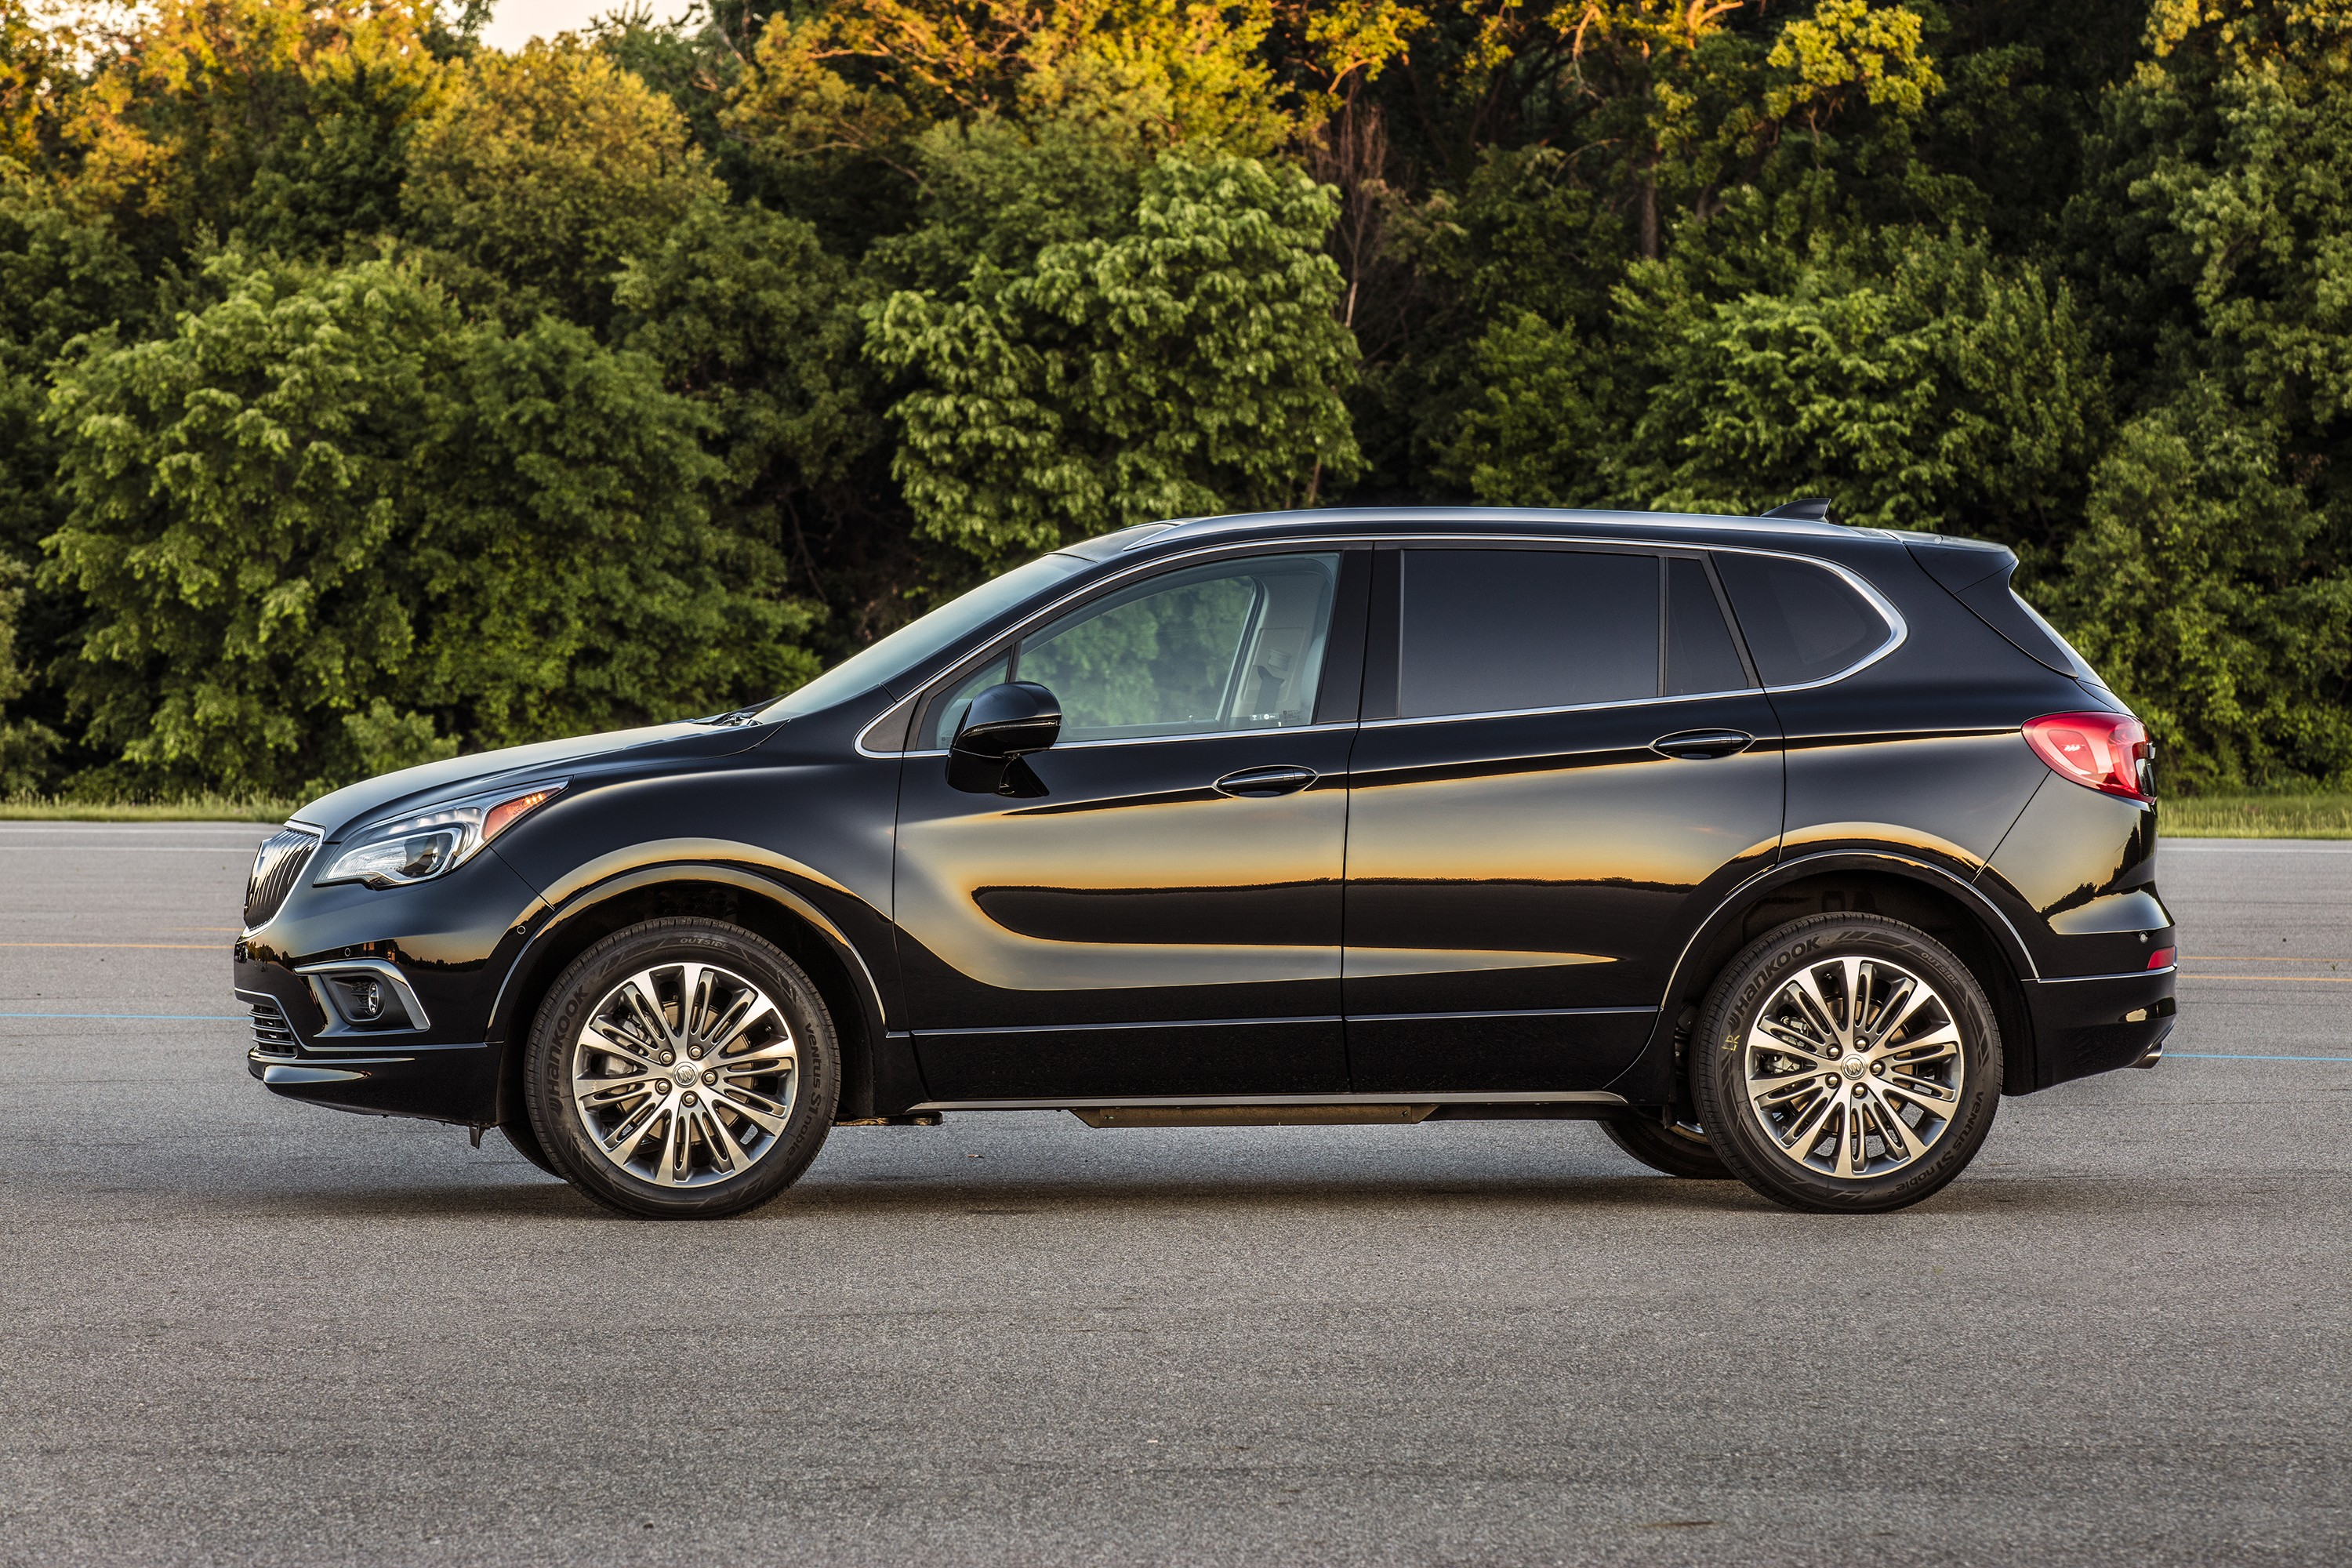 2014 - [Buick] Envision - Page 4 2019-buick-envision-adds-hydra-matic-9-speed-automatic-transmission_4